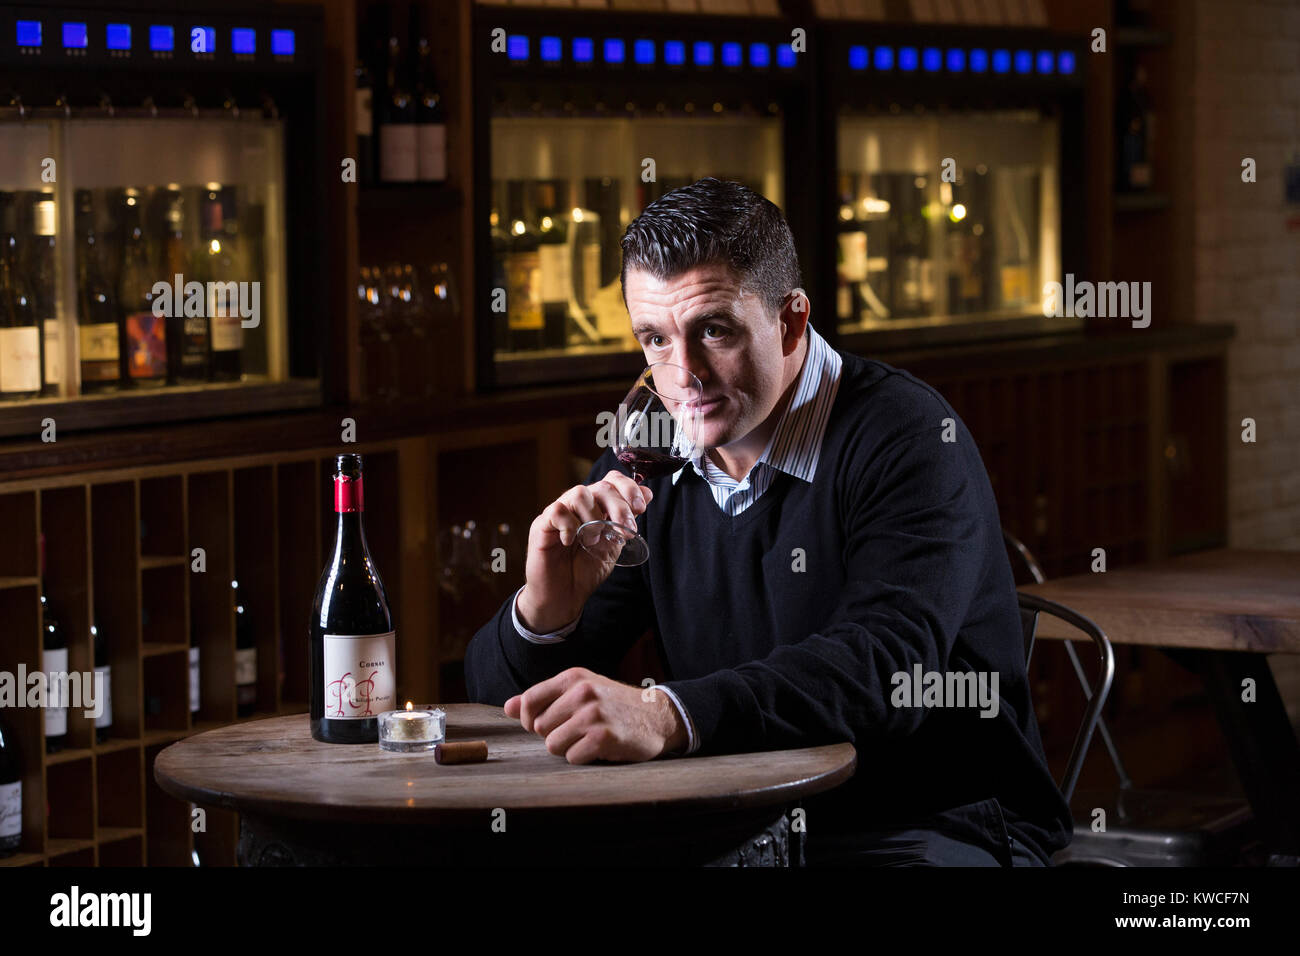 Andrew Sheridan, former England prop in world rugby, now holder of Wine and Spirit Education Trust Diploma, photographed - Stock Image